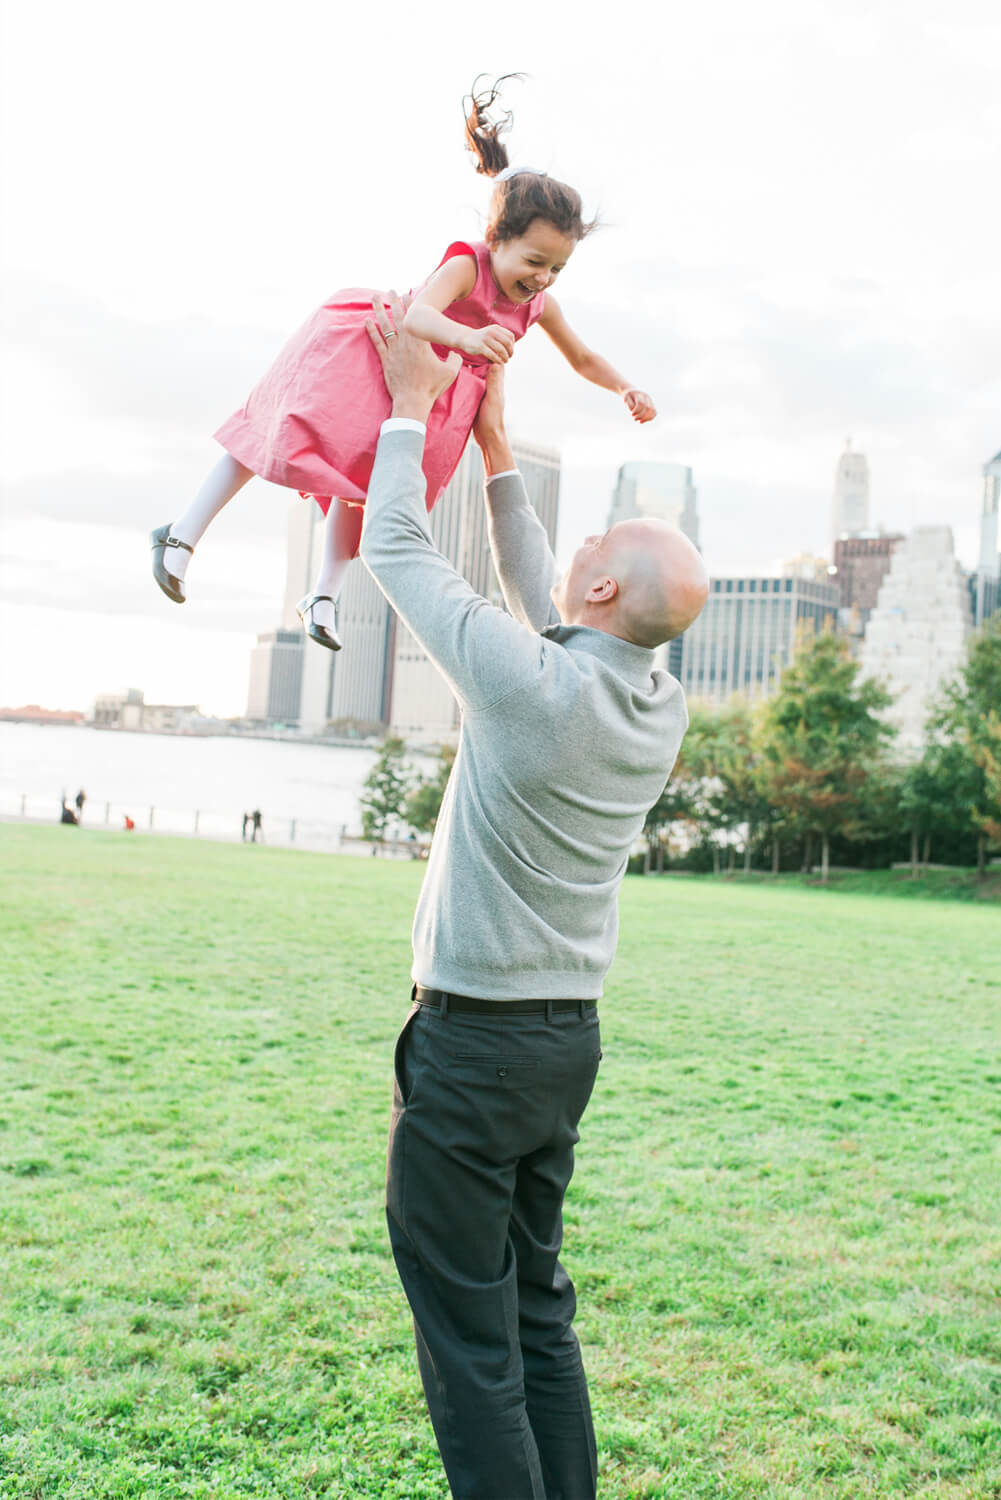 Brooklyn Bridge Park best location for Lifestyle Family Session in NYC.  View Newborn and Family Gallery by Lindsey Victoria Photography based in Litchfield County, CT.